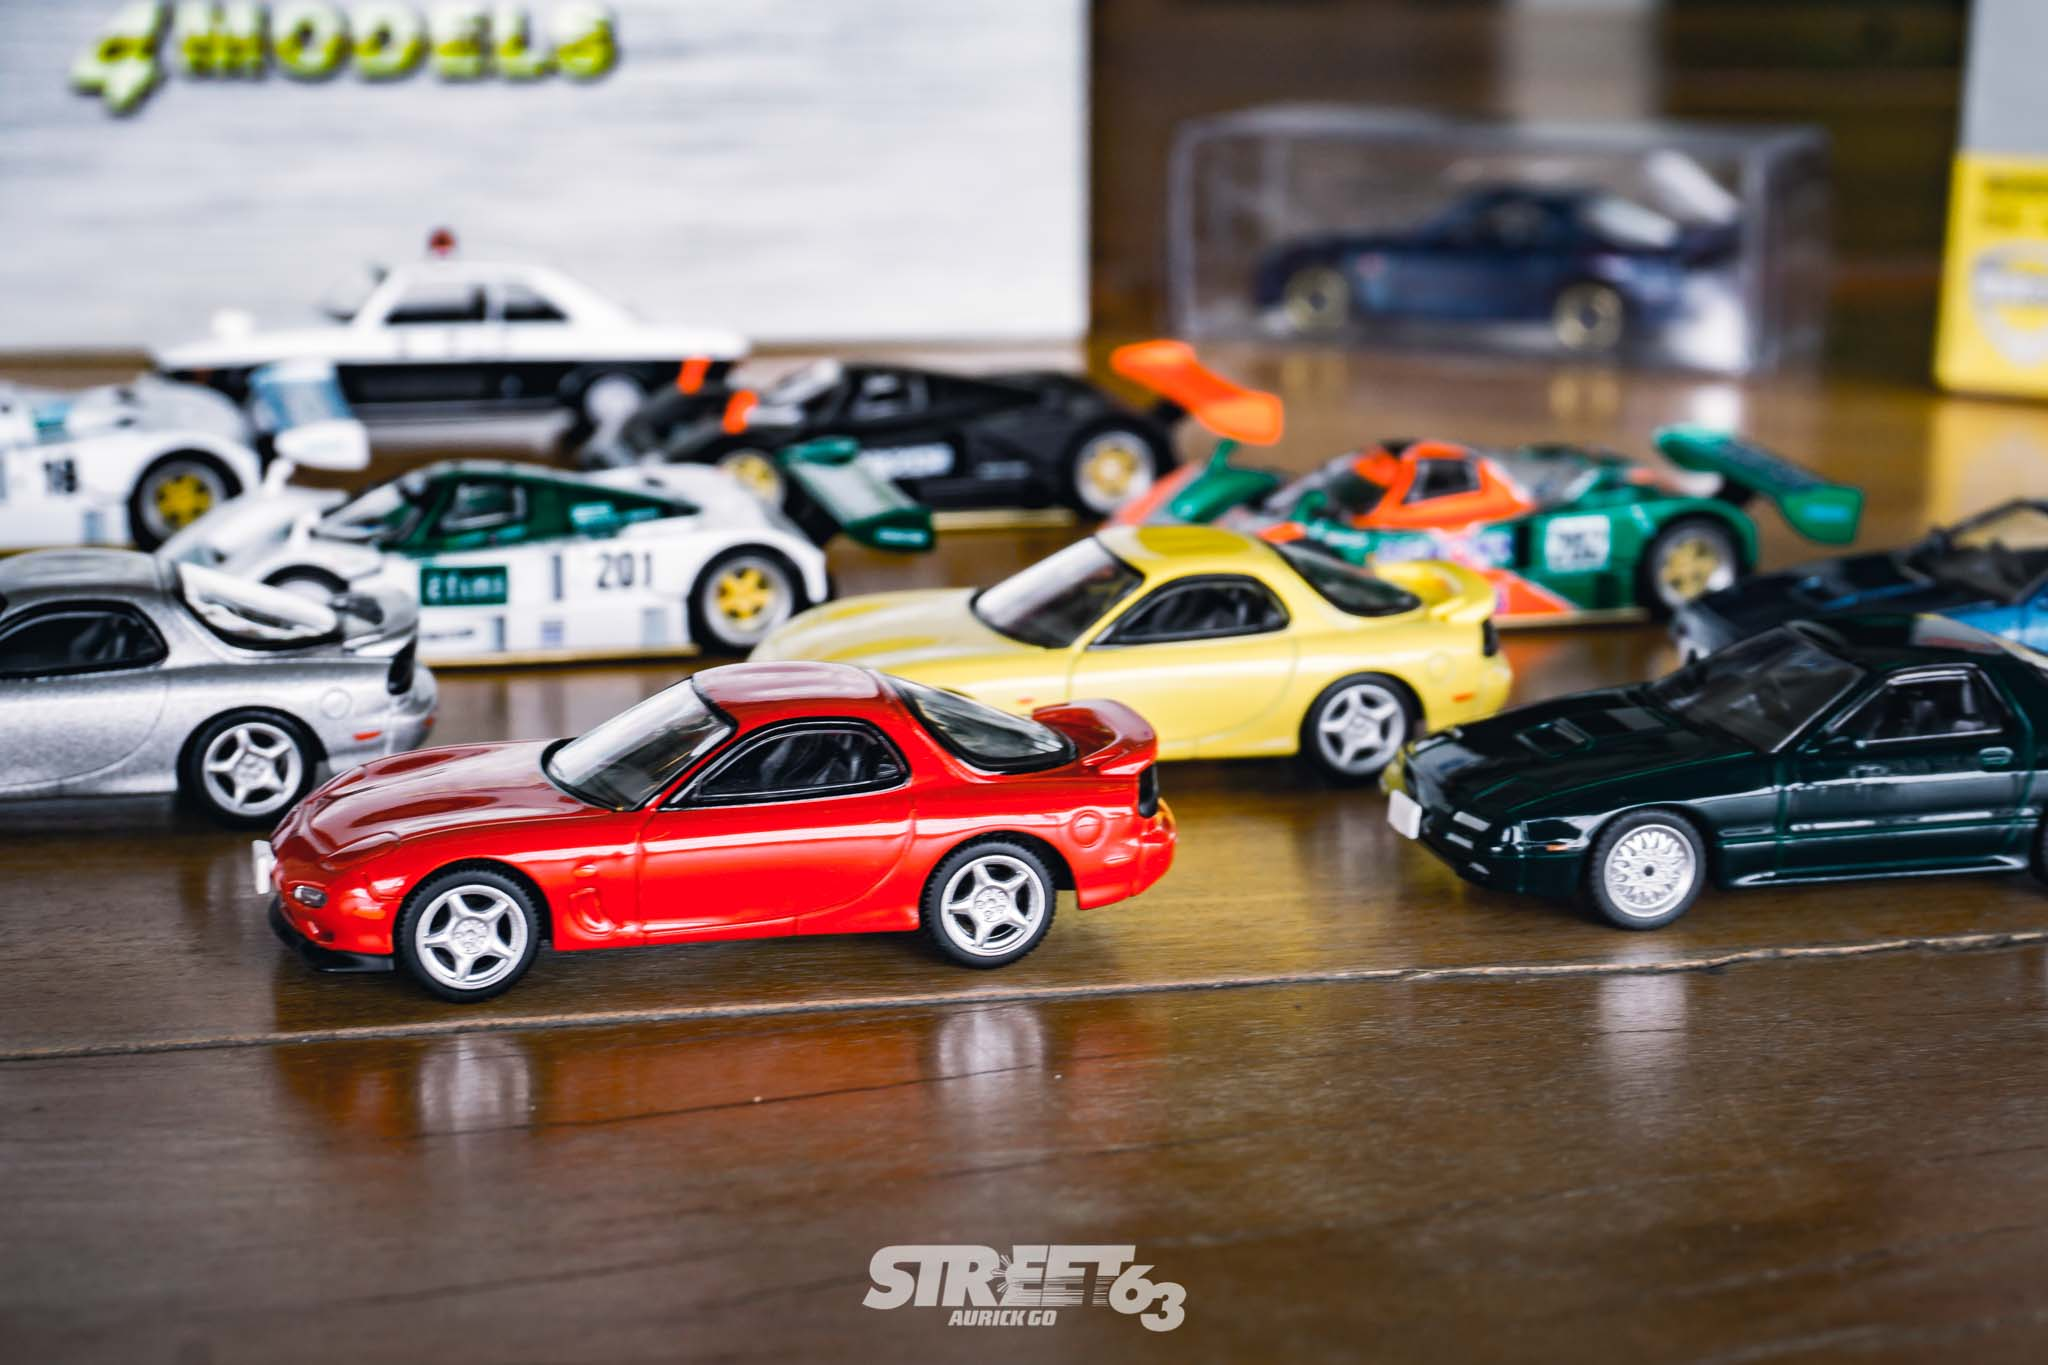 Mini63: The Street63 Diecast Collection 2